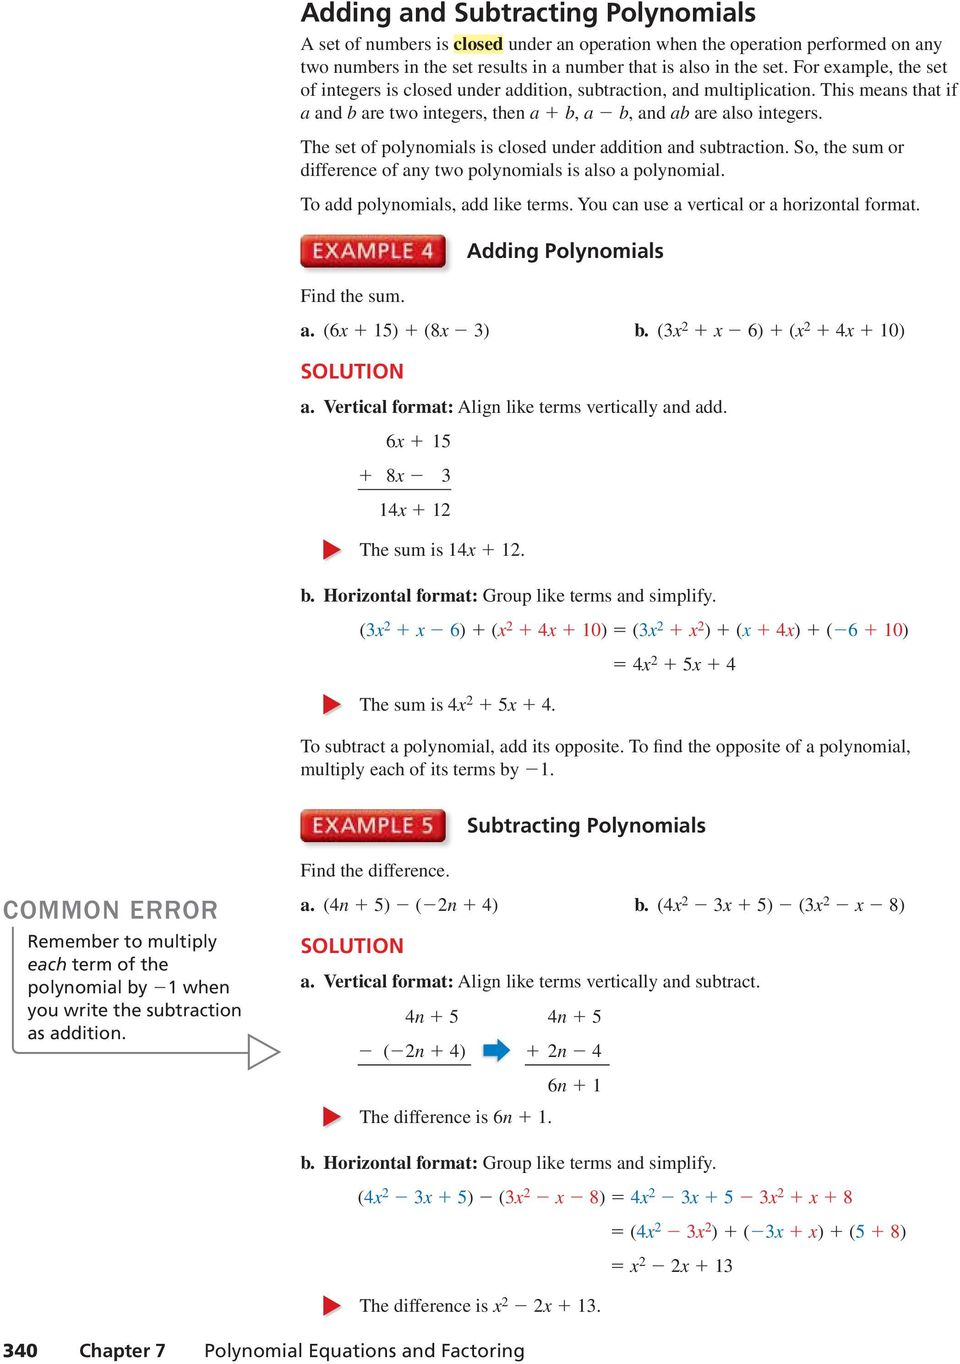 The set of polynomials is closed under addition and subtraction. So, the sum or difference of any two polynomials is also a polynomial. To add polynomials, add like terms.